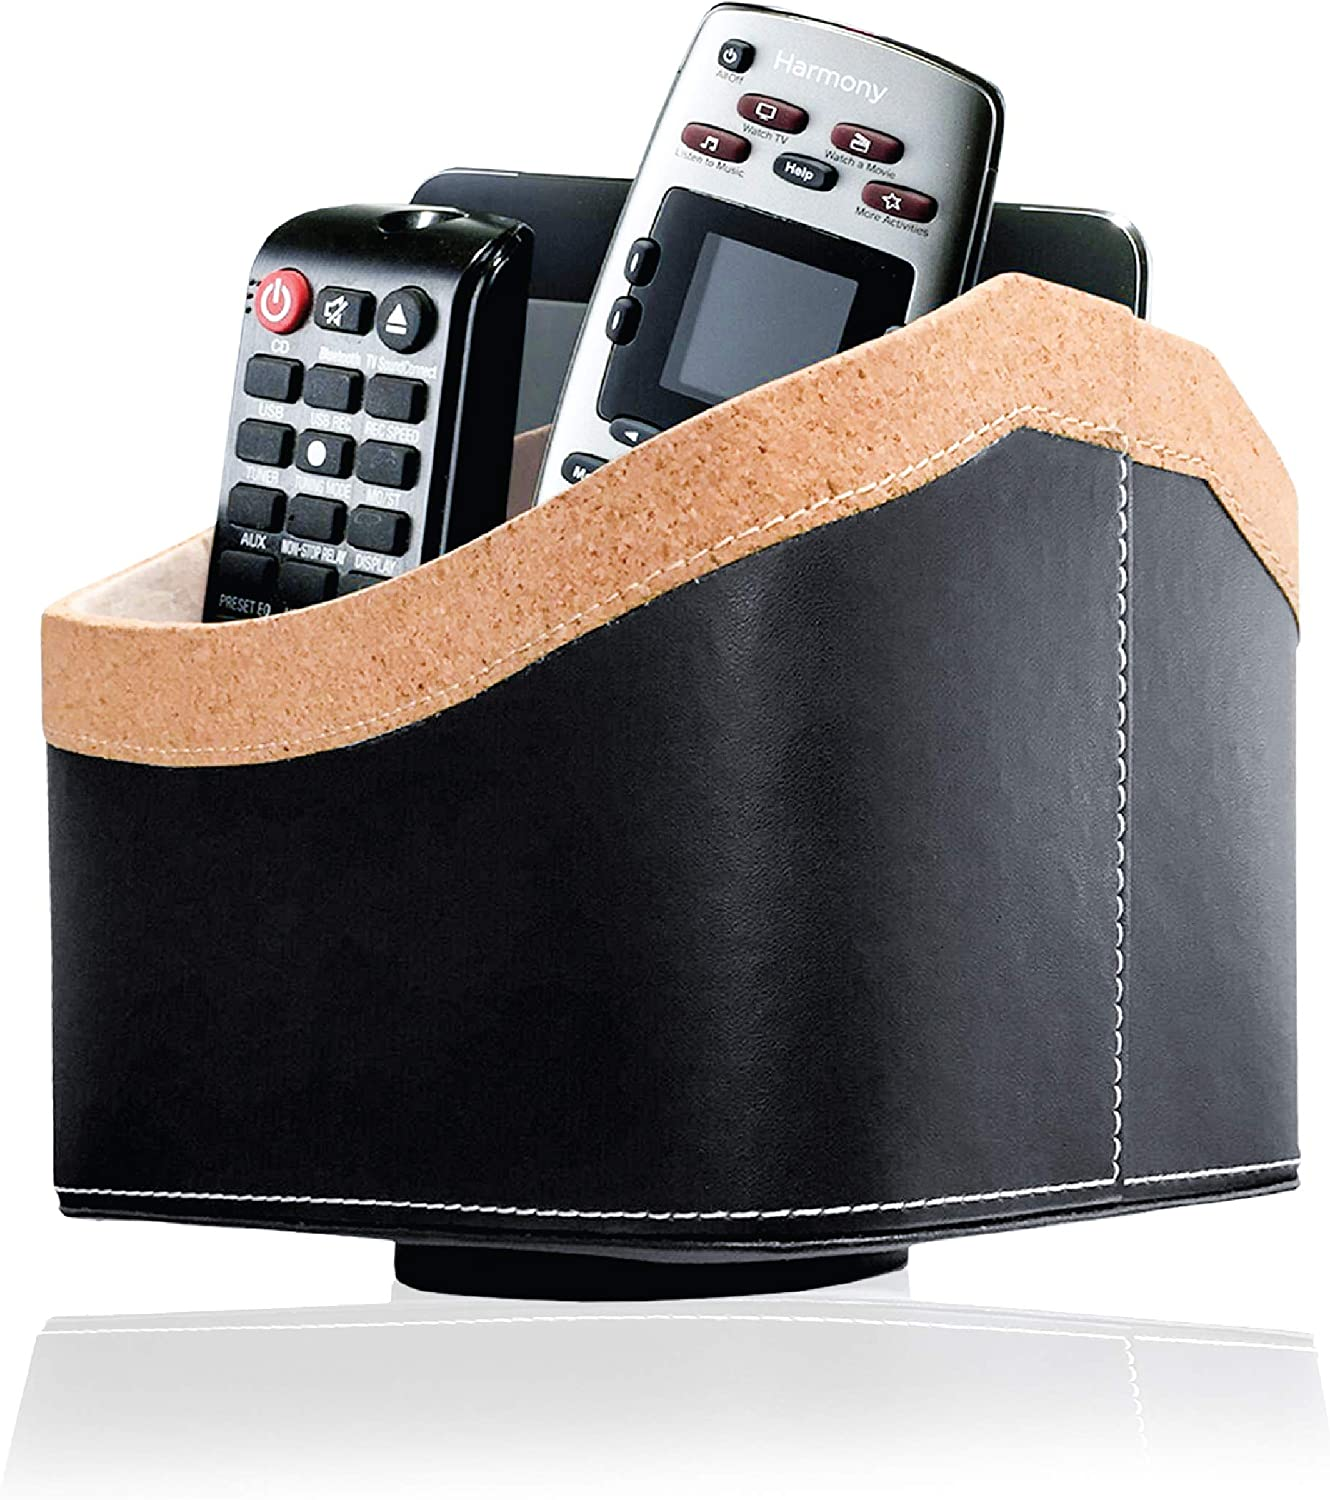 TV Remote Control Phone Holder Household 5 Compartments Rack Storage Caddy